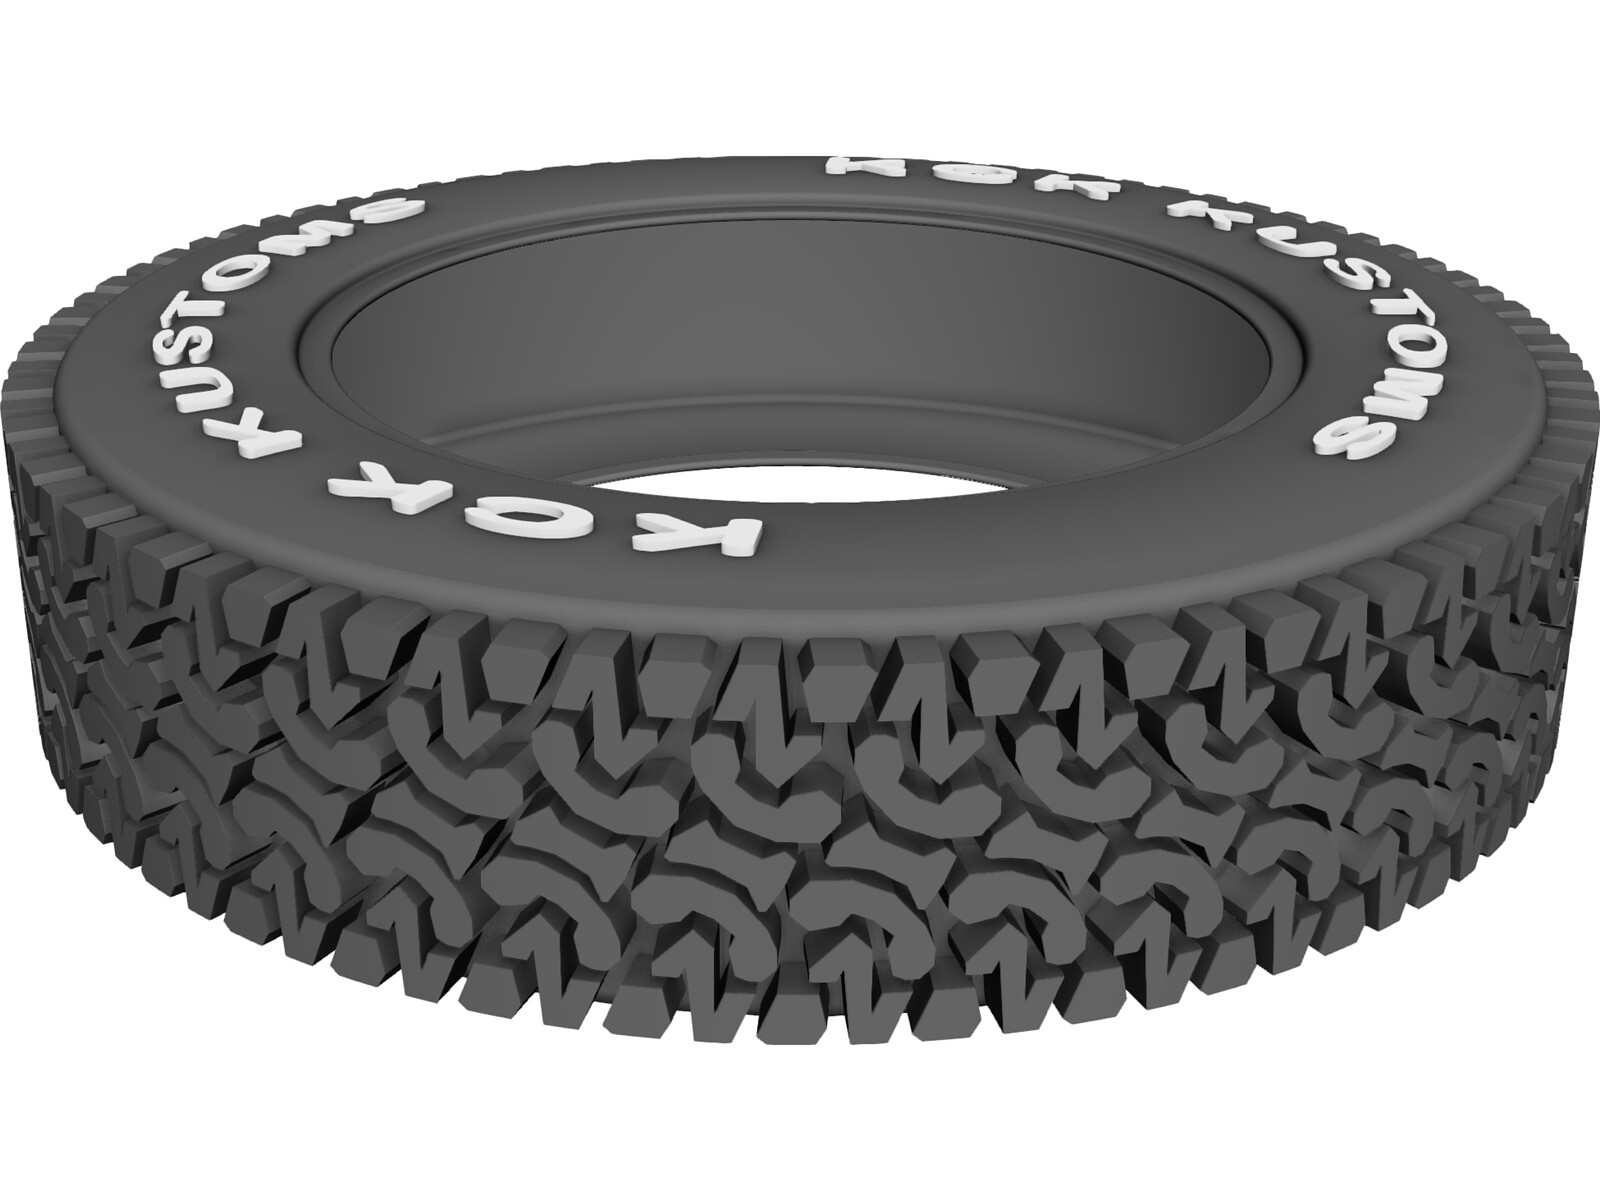 "Tire KCK 35"" A/T 3D CAD Model"